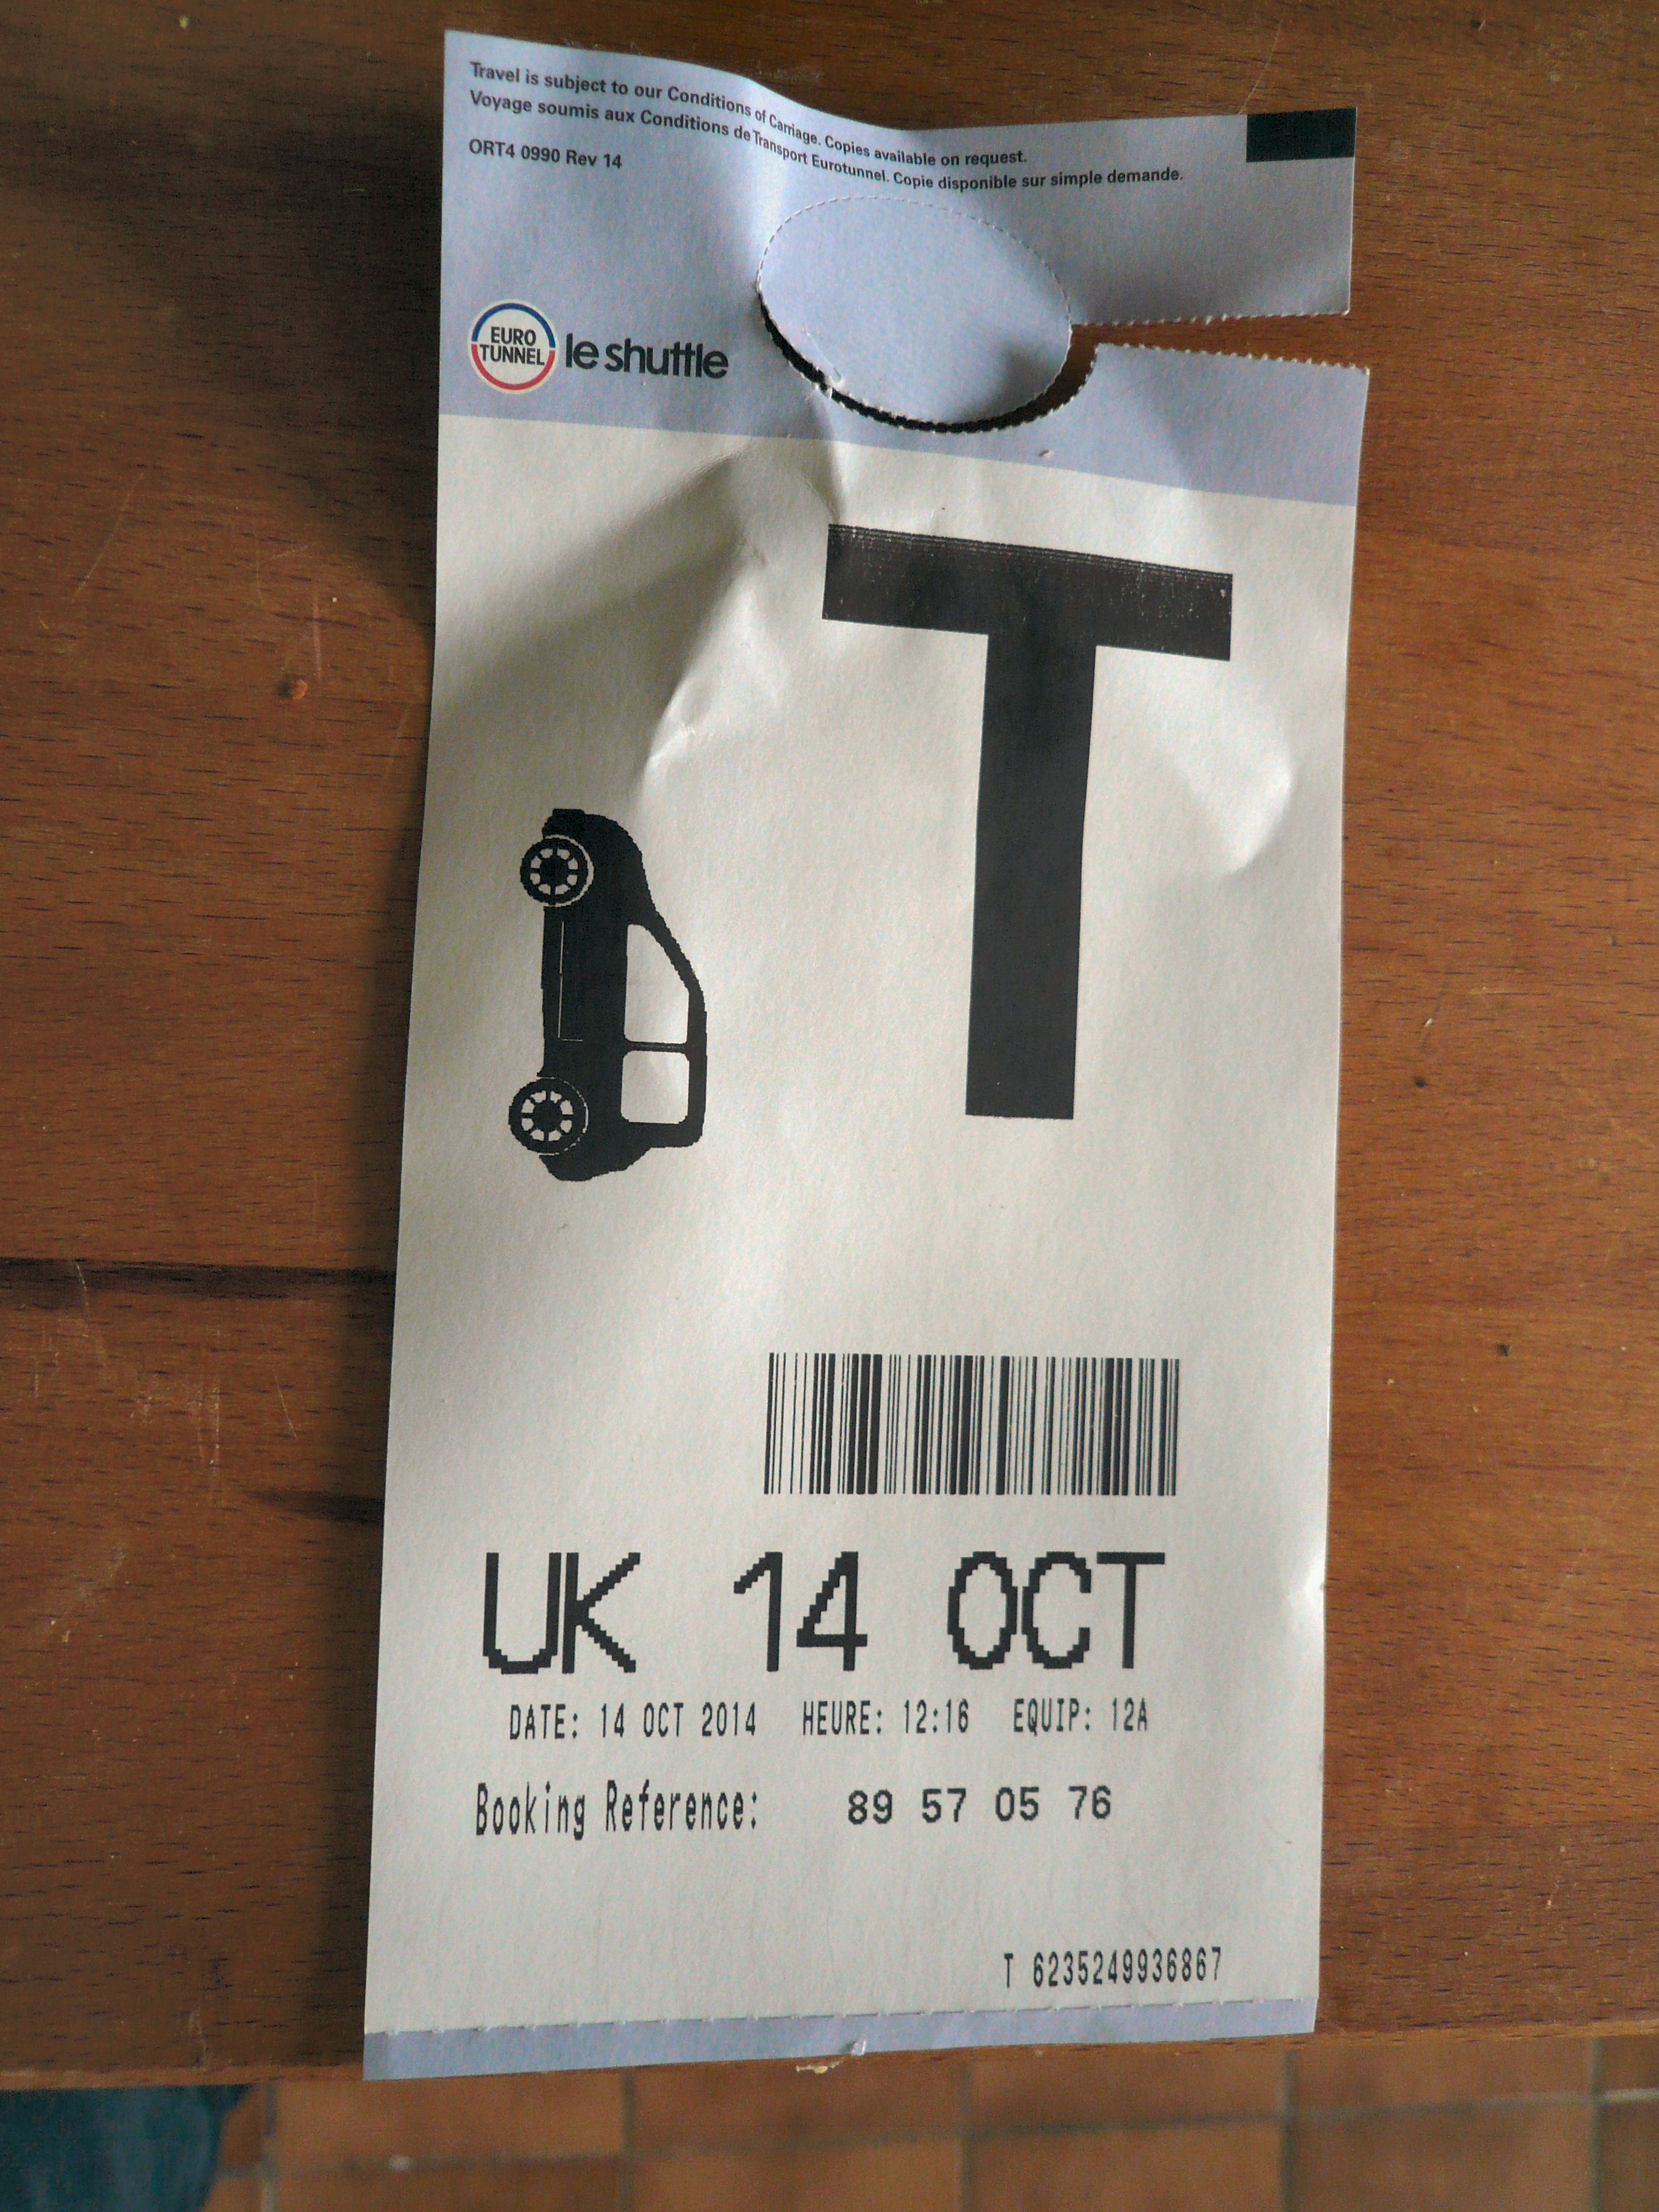 Eurotunnel ticket front